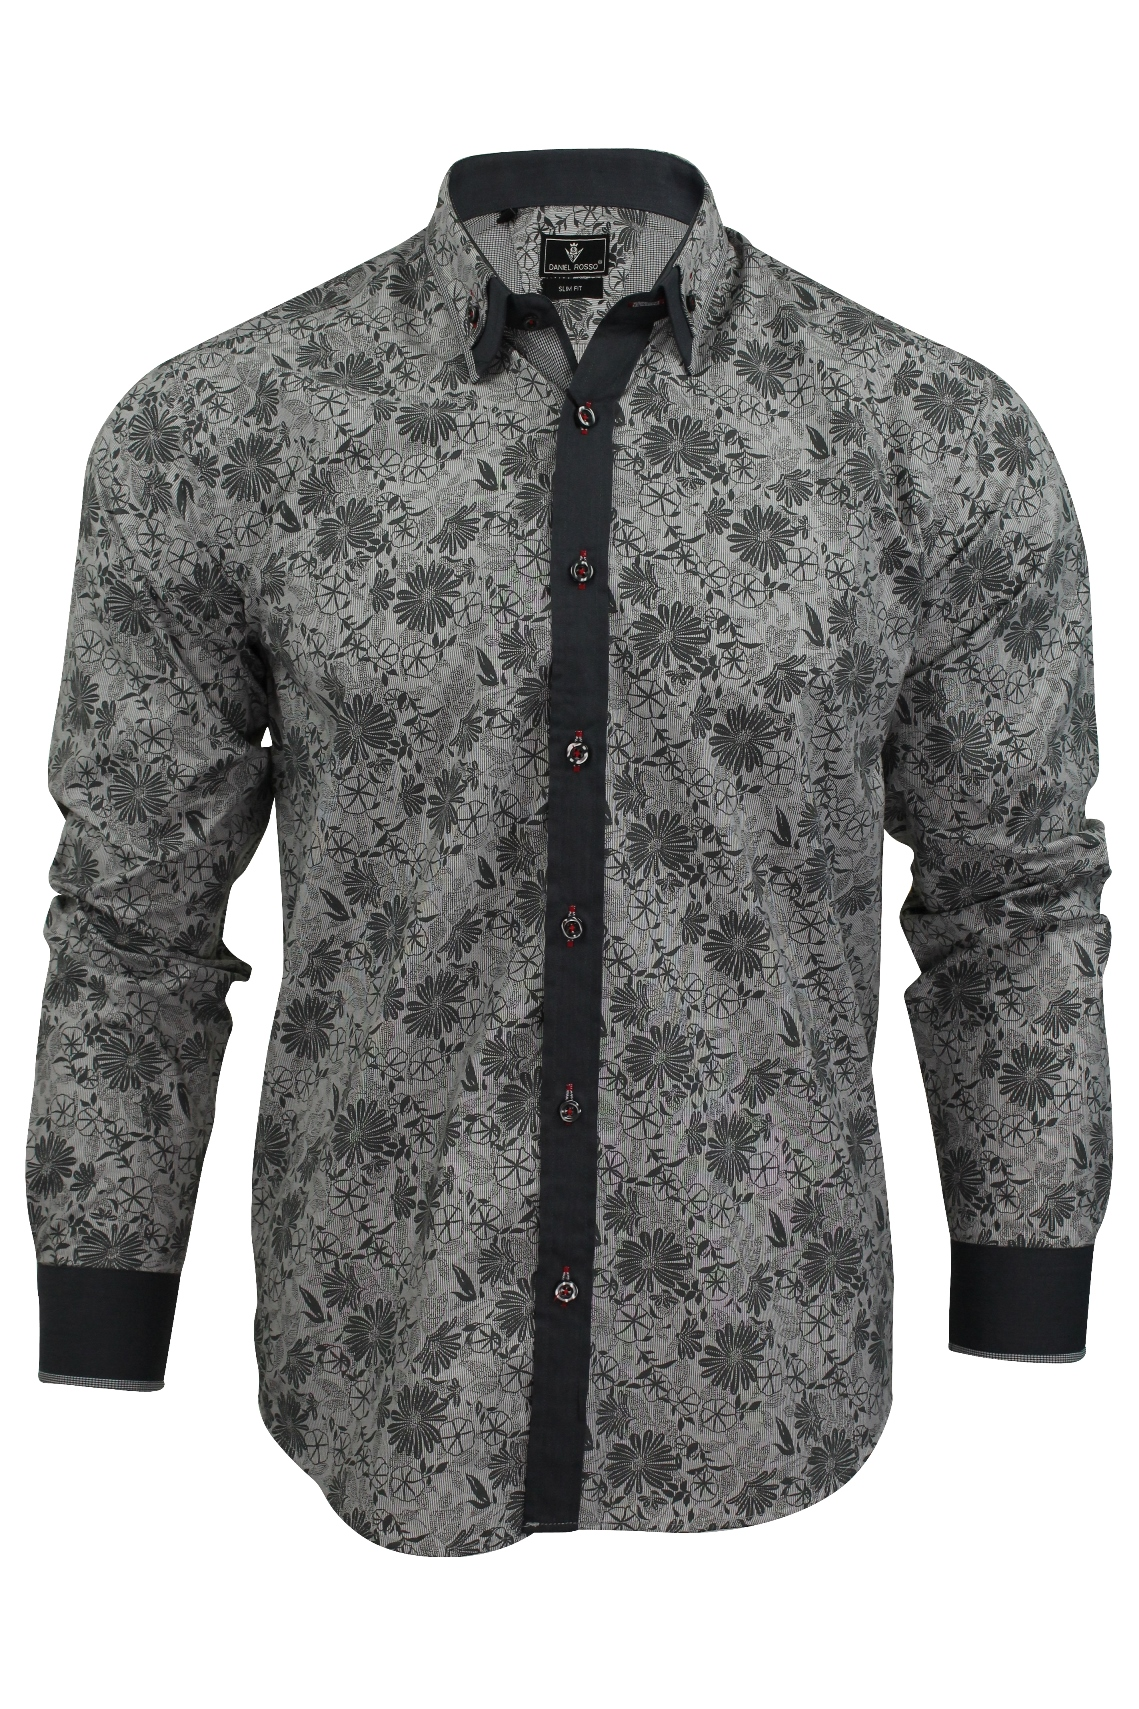 Mens Floral Shirt By Daniel Rosso High Button Down Collar